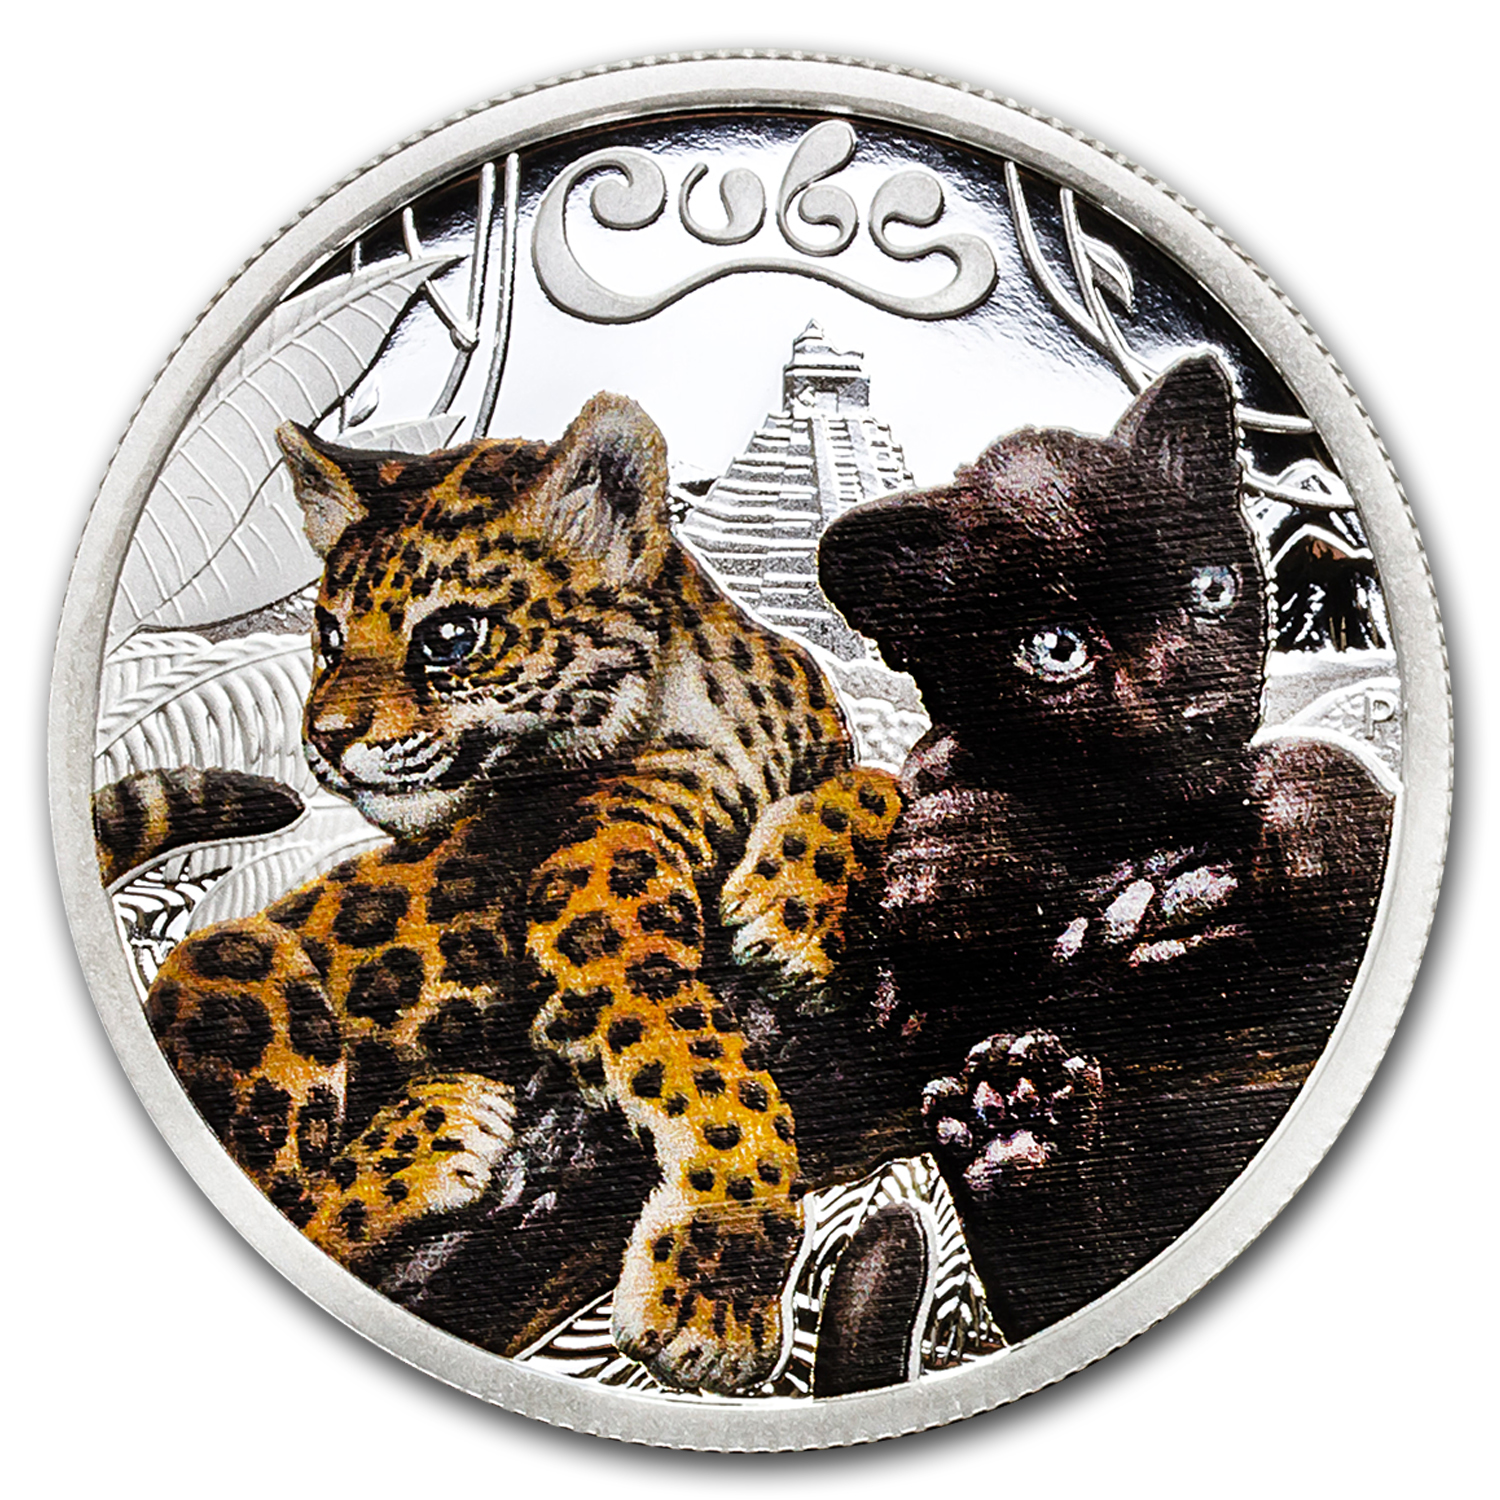 2016 Tuvalu 1/2 oz Silver Proof Jaguar Cubs